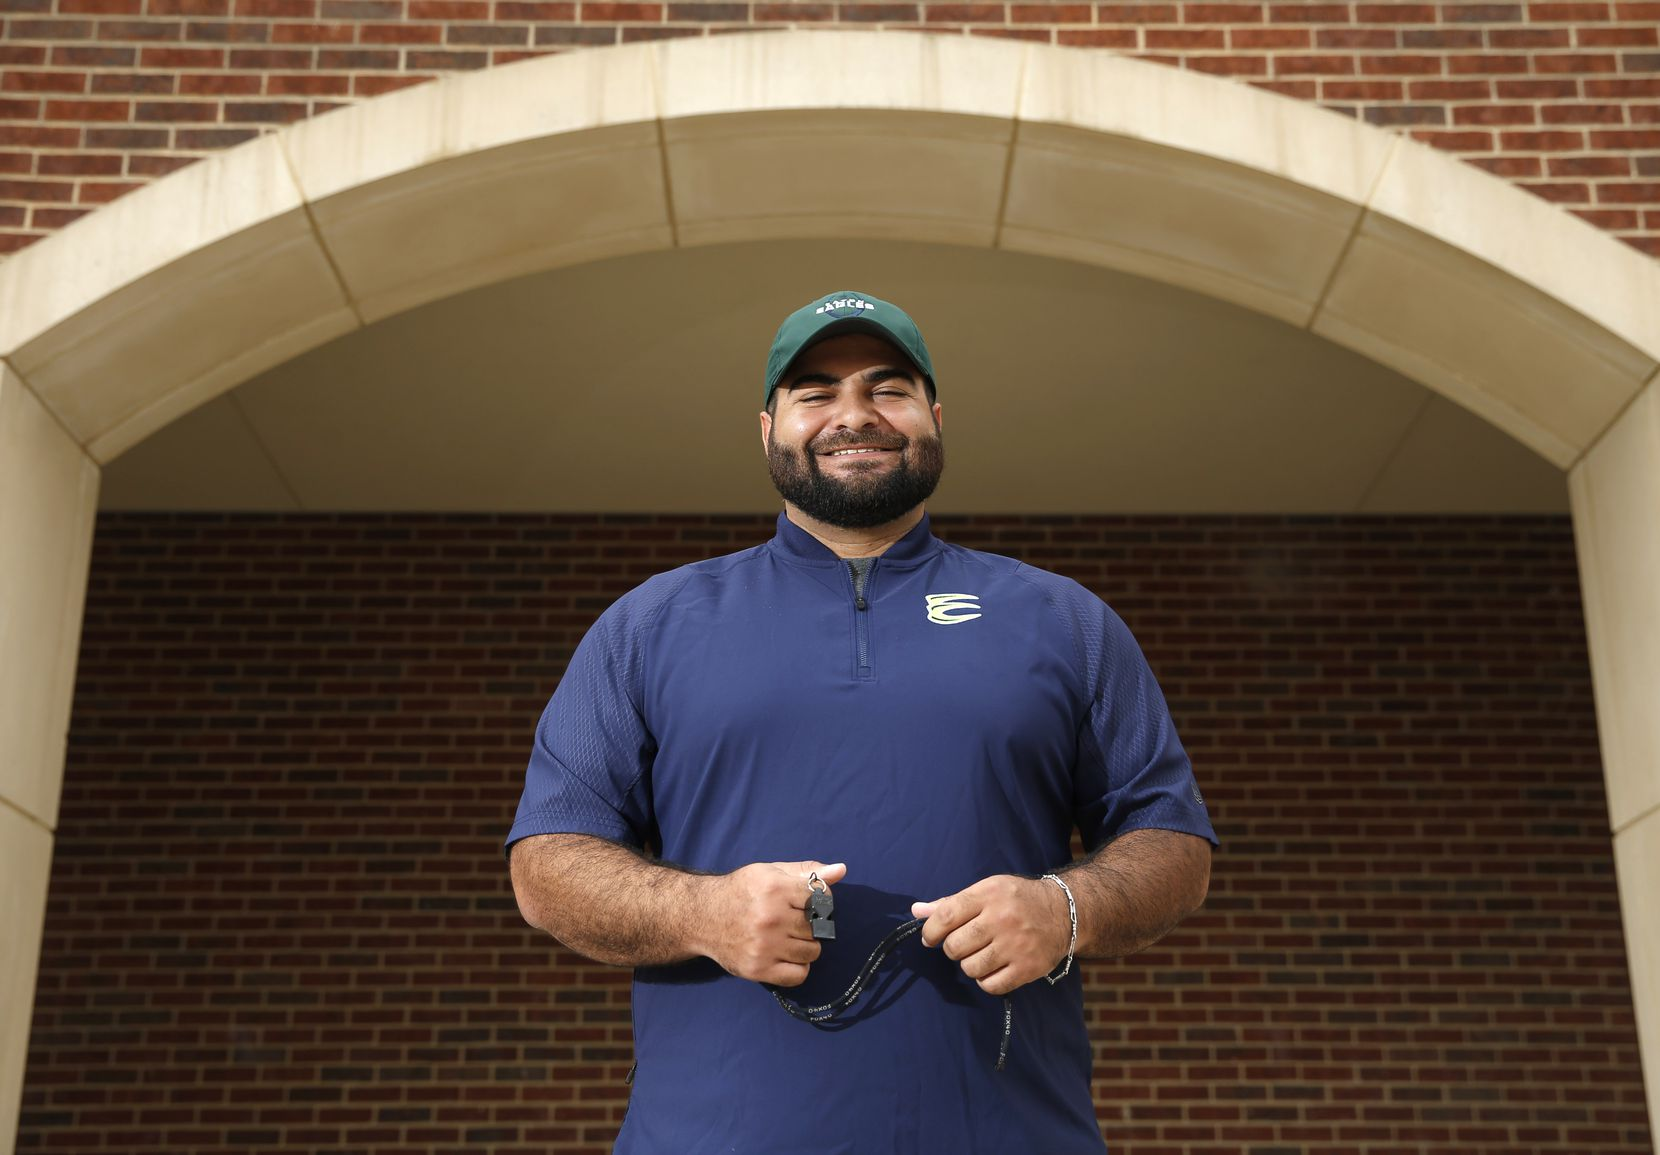 Marco Regalado poses for a portrait at Northwest Eaton High School in Haslet, Texas on Monday, July 6, 2020. Regalado drew the attention of Northwest Eaton head coach Ellis Miller, who then hired him to be an assistant football coach in DFW.